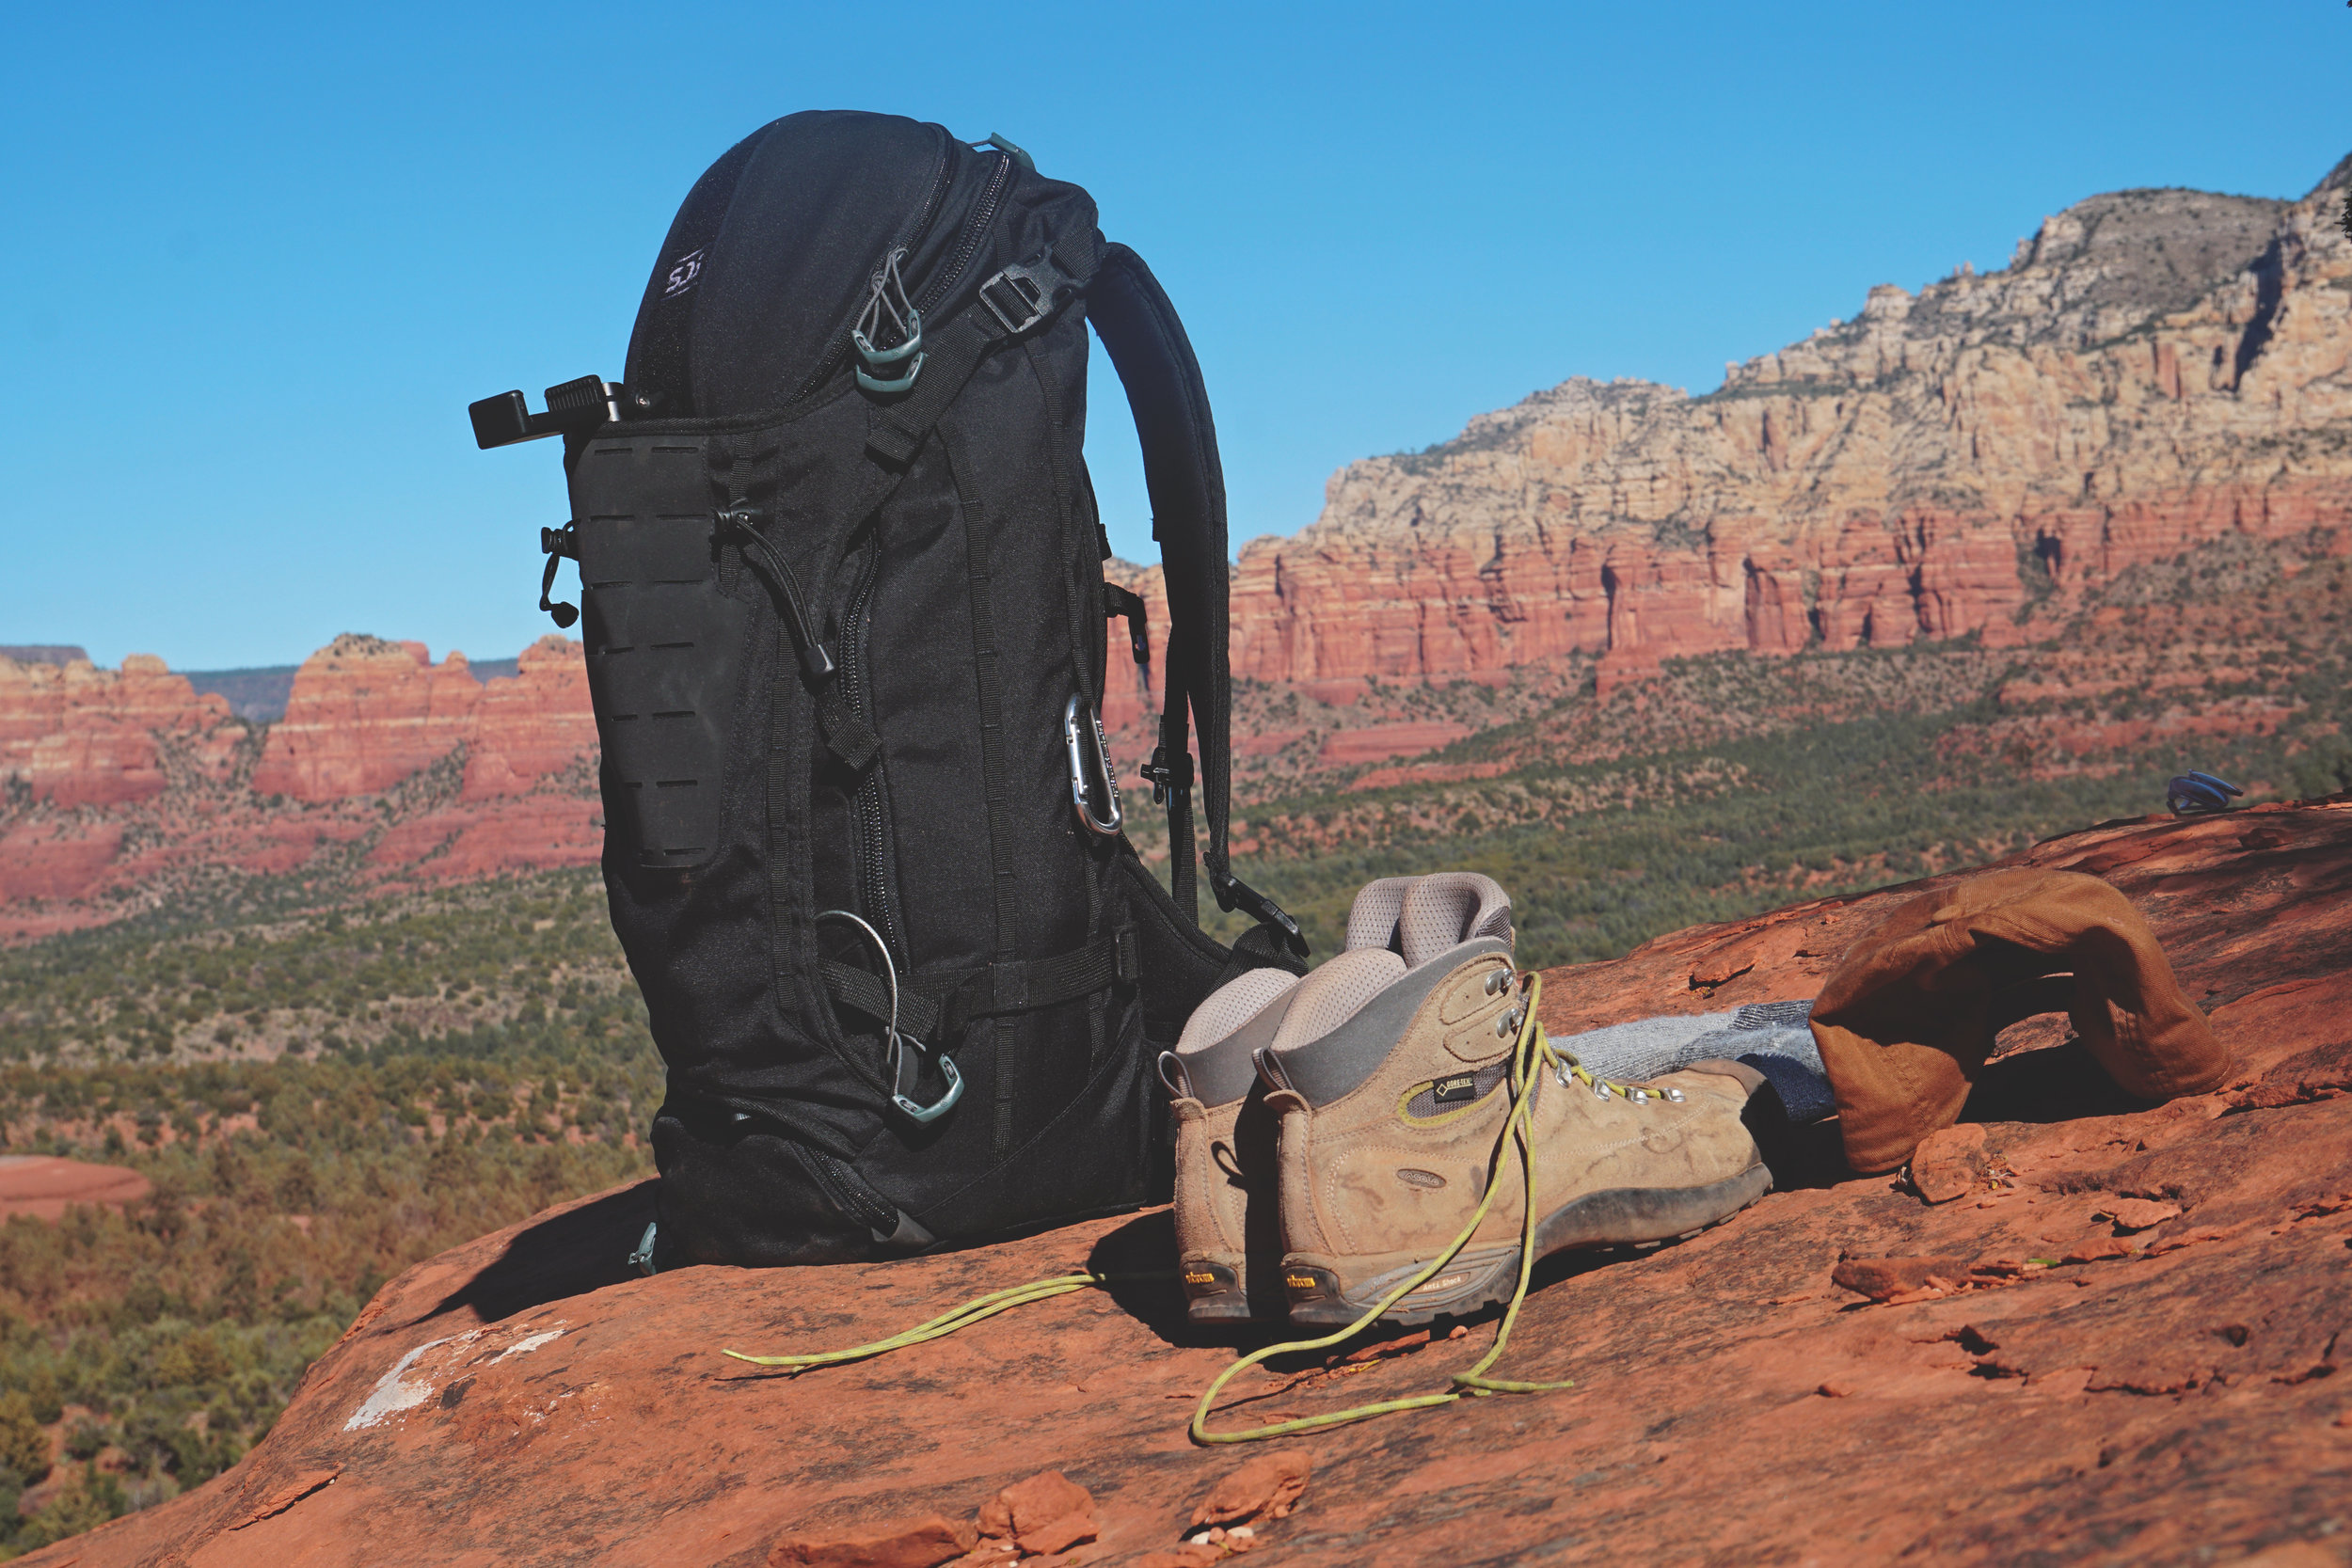 SOG Backpack in Sedona Arizona